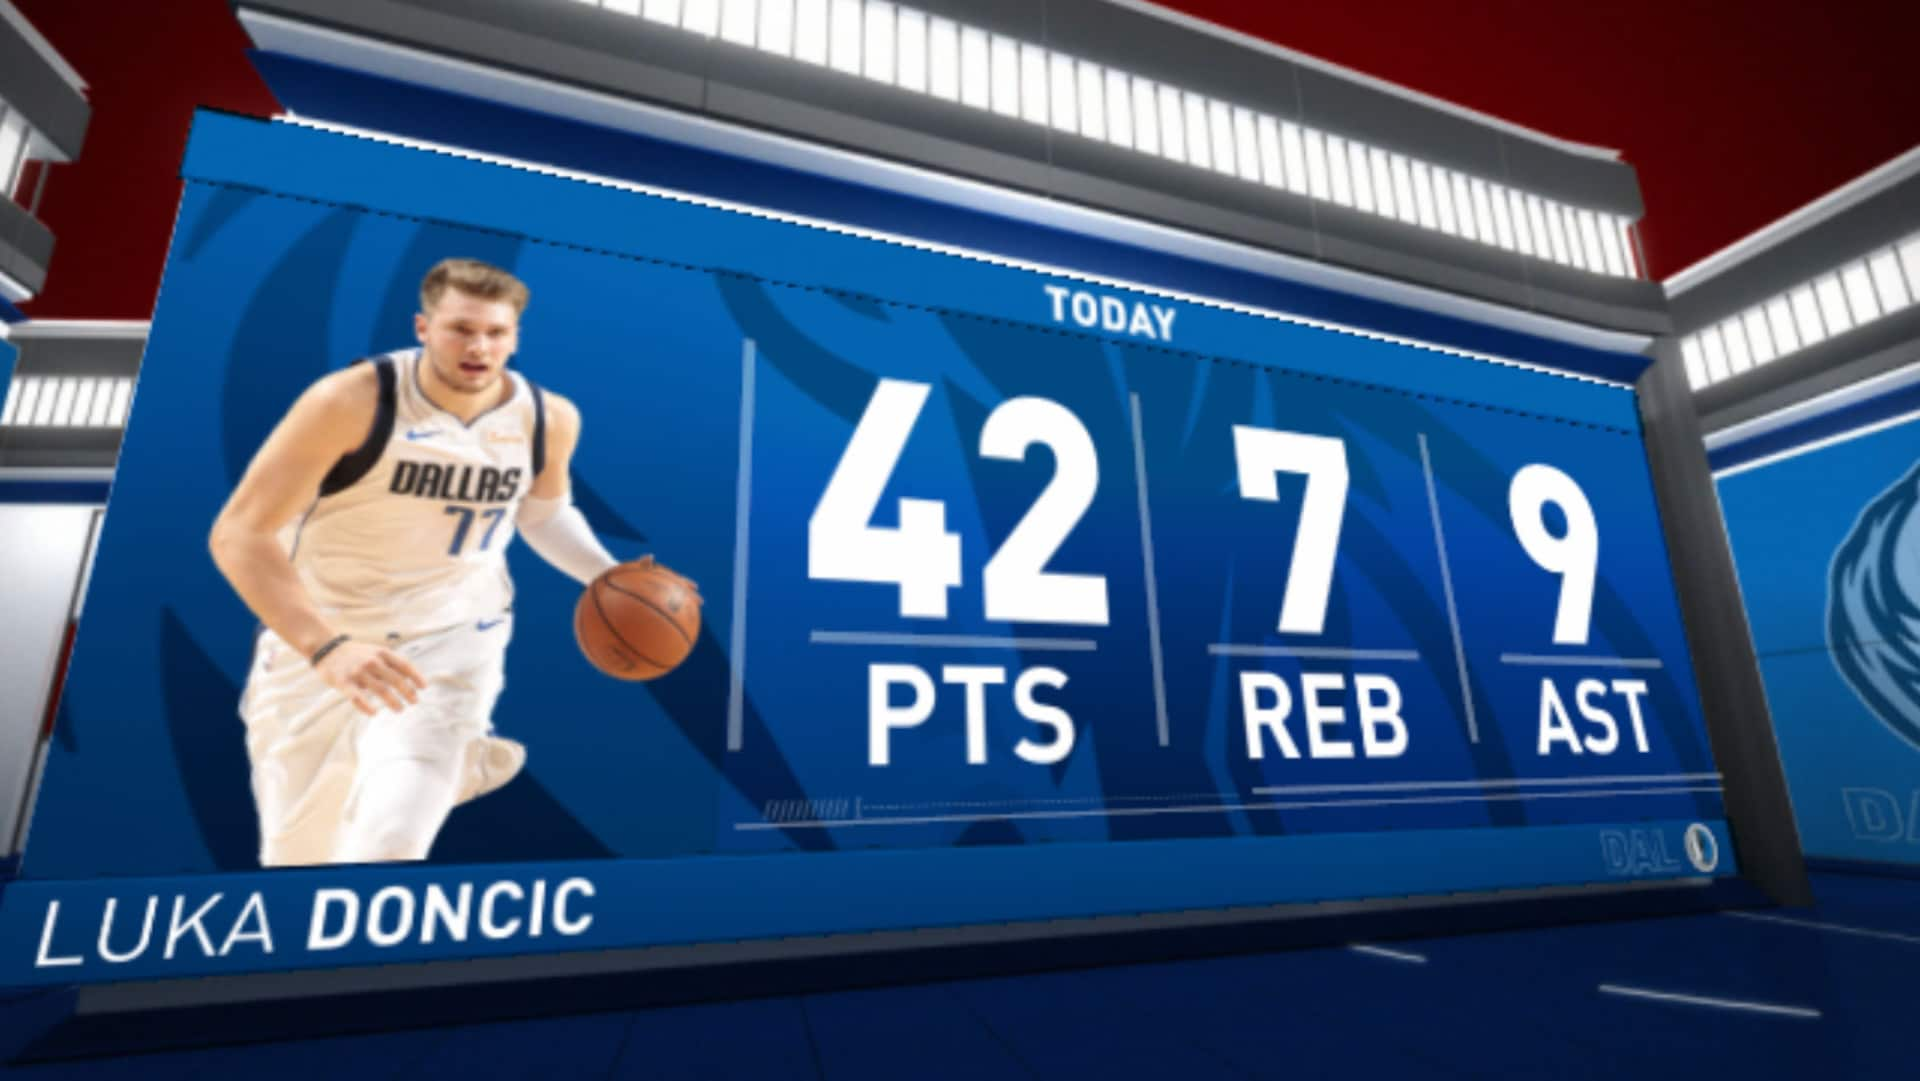 Luka Doncic's 42-point Game 1 sets new NBA playoff debut record